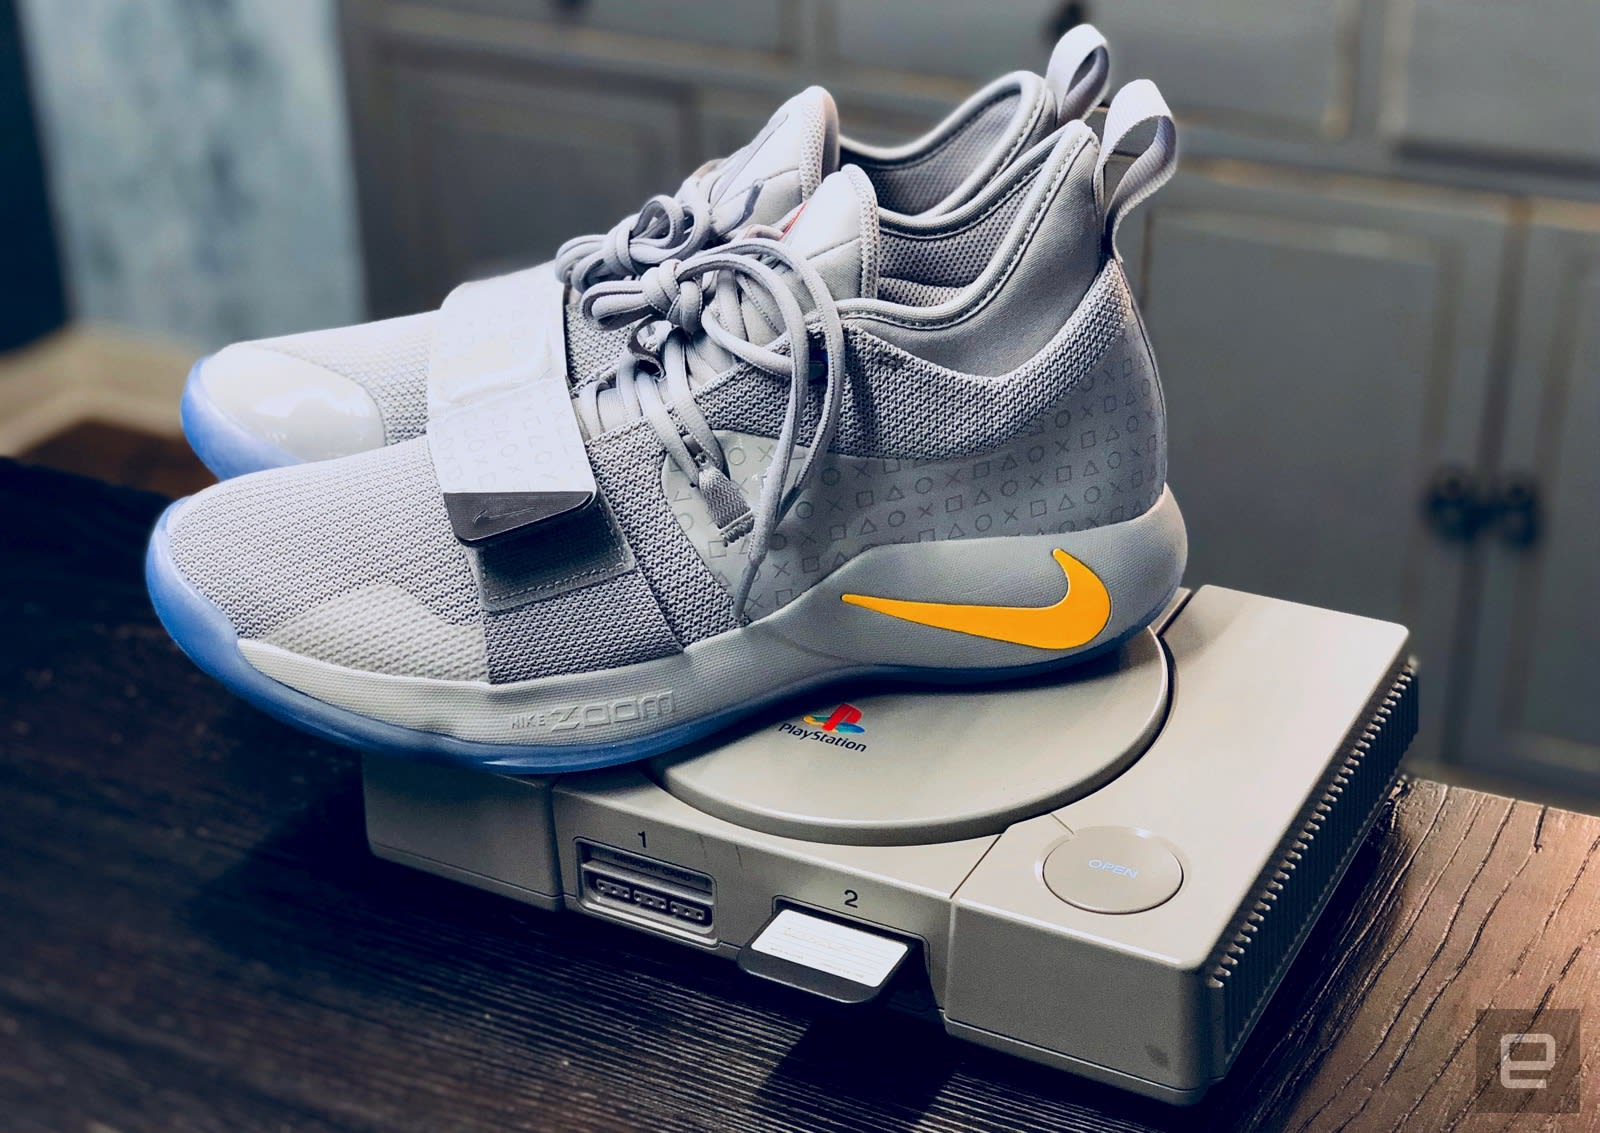 9ec72685ff9a2 Nike's new PlayStation sneakers pay homage to Sony's classic console